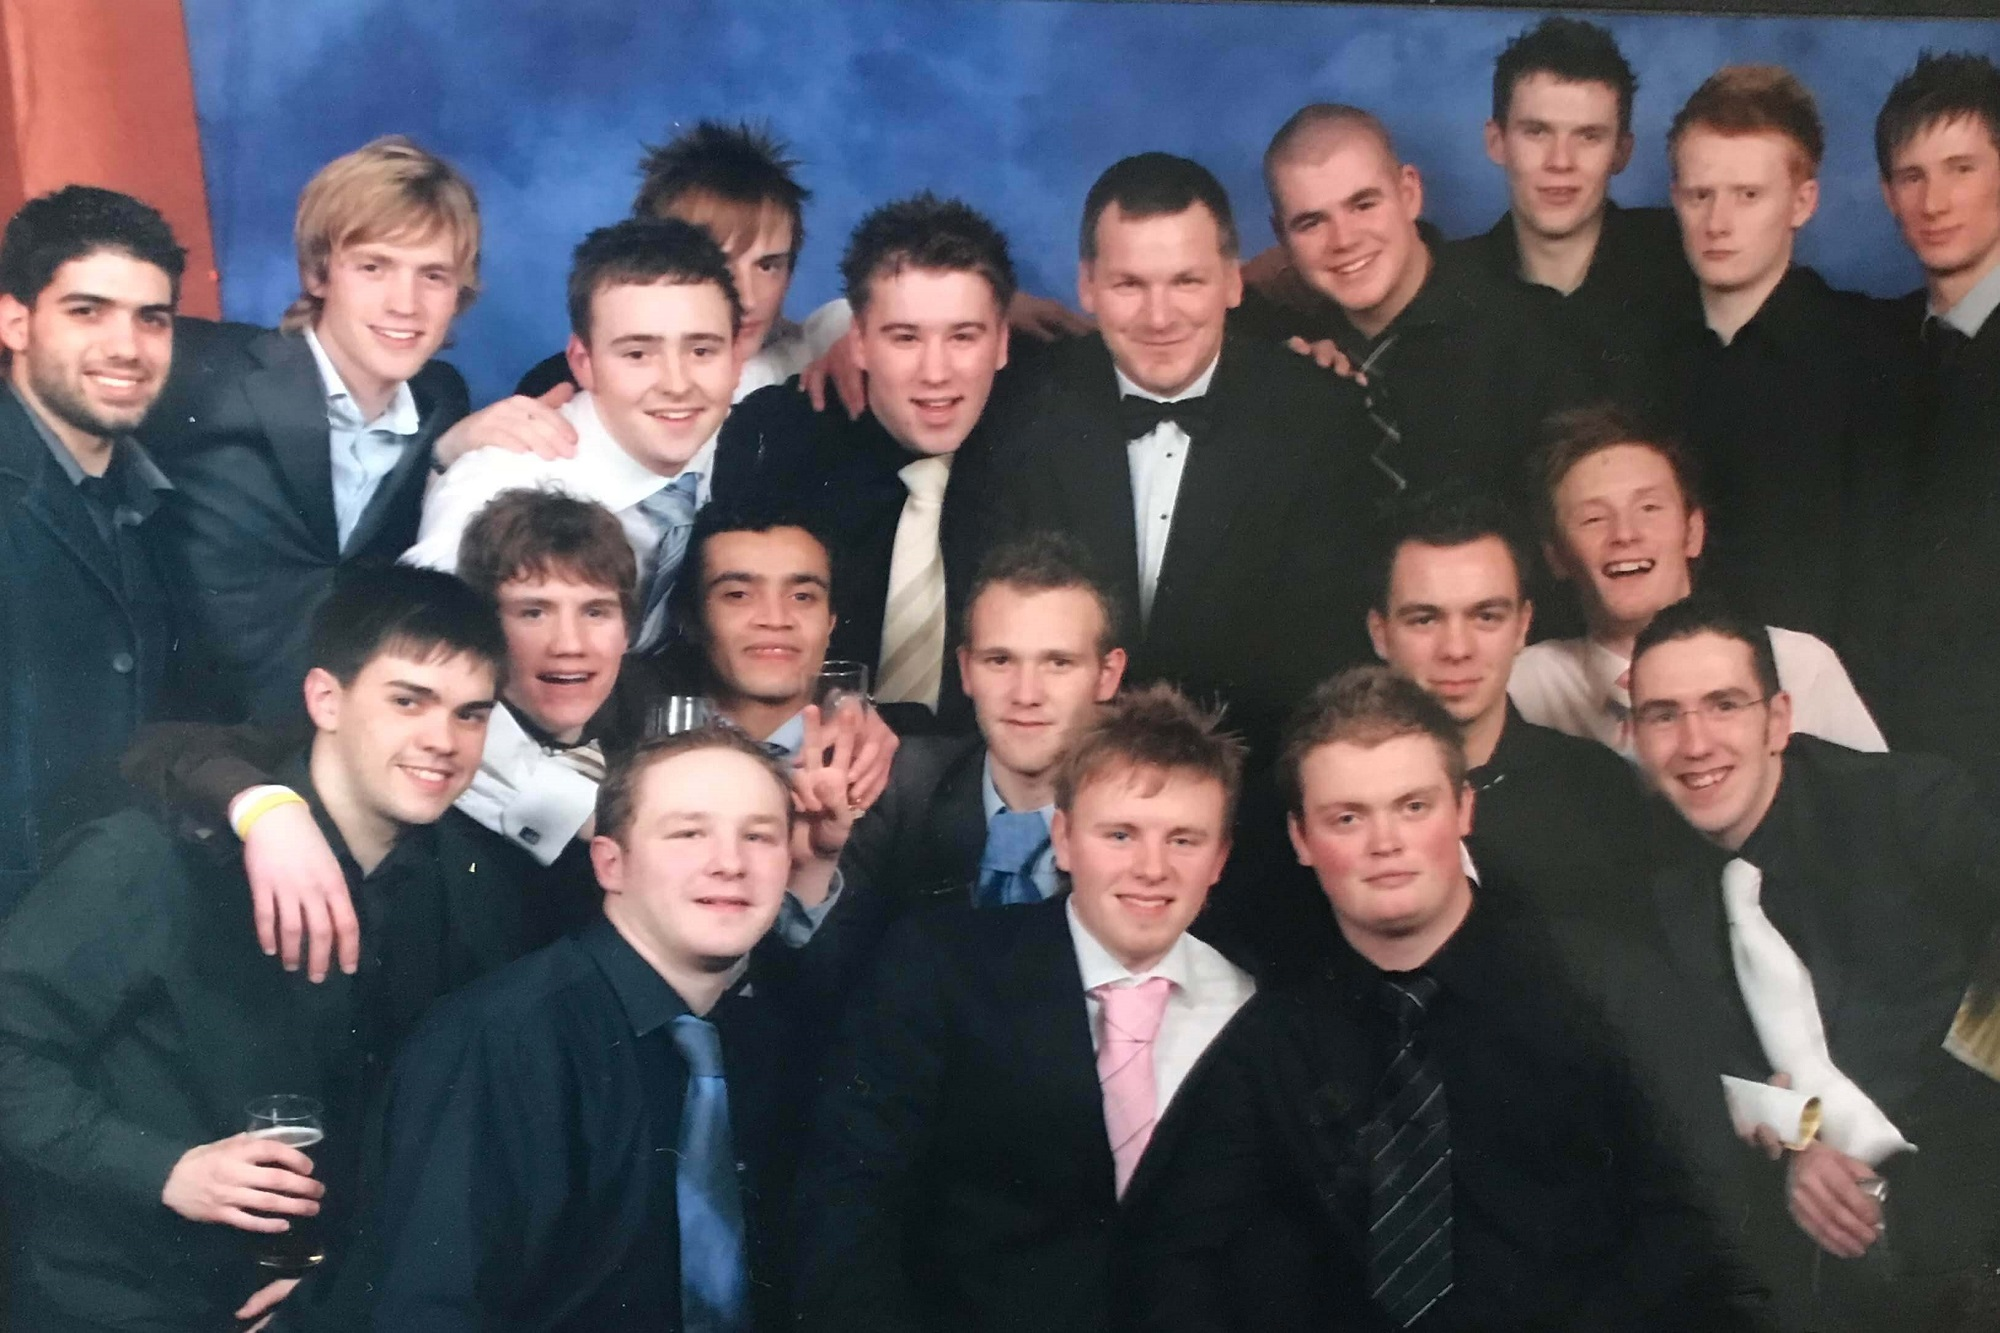 A group of university students wearing shirts and ties with TV presenter Ray Stubbs, wearing a dinner jacket, all posing for and smiling at the camera.